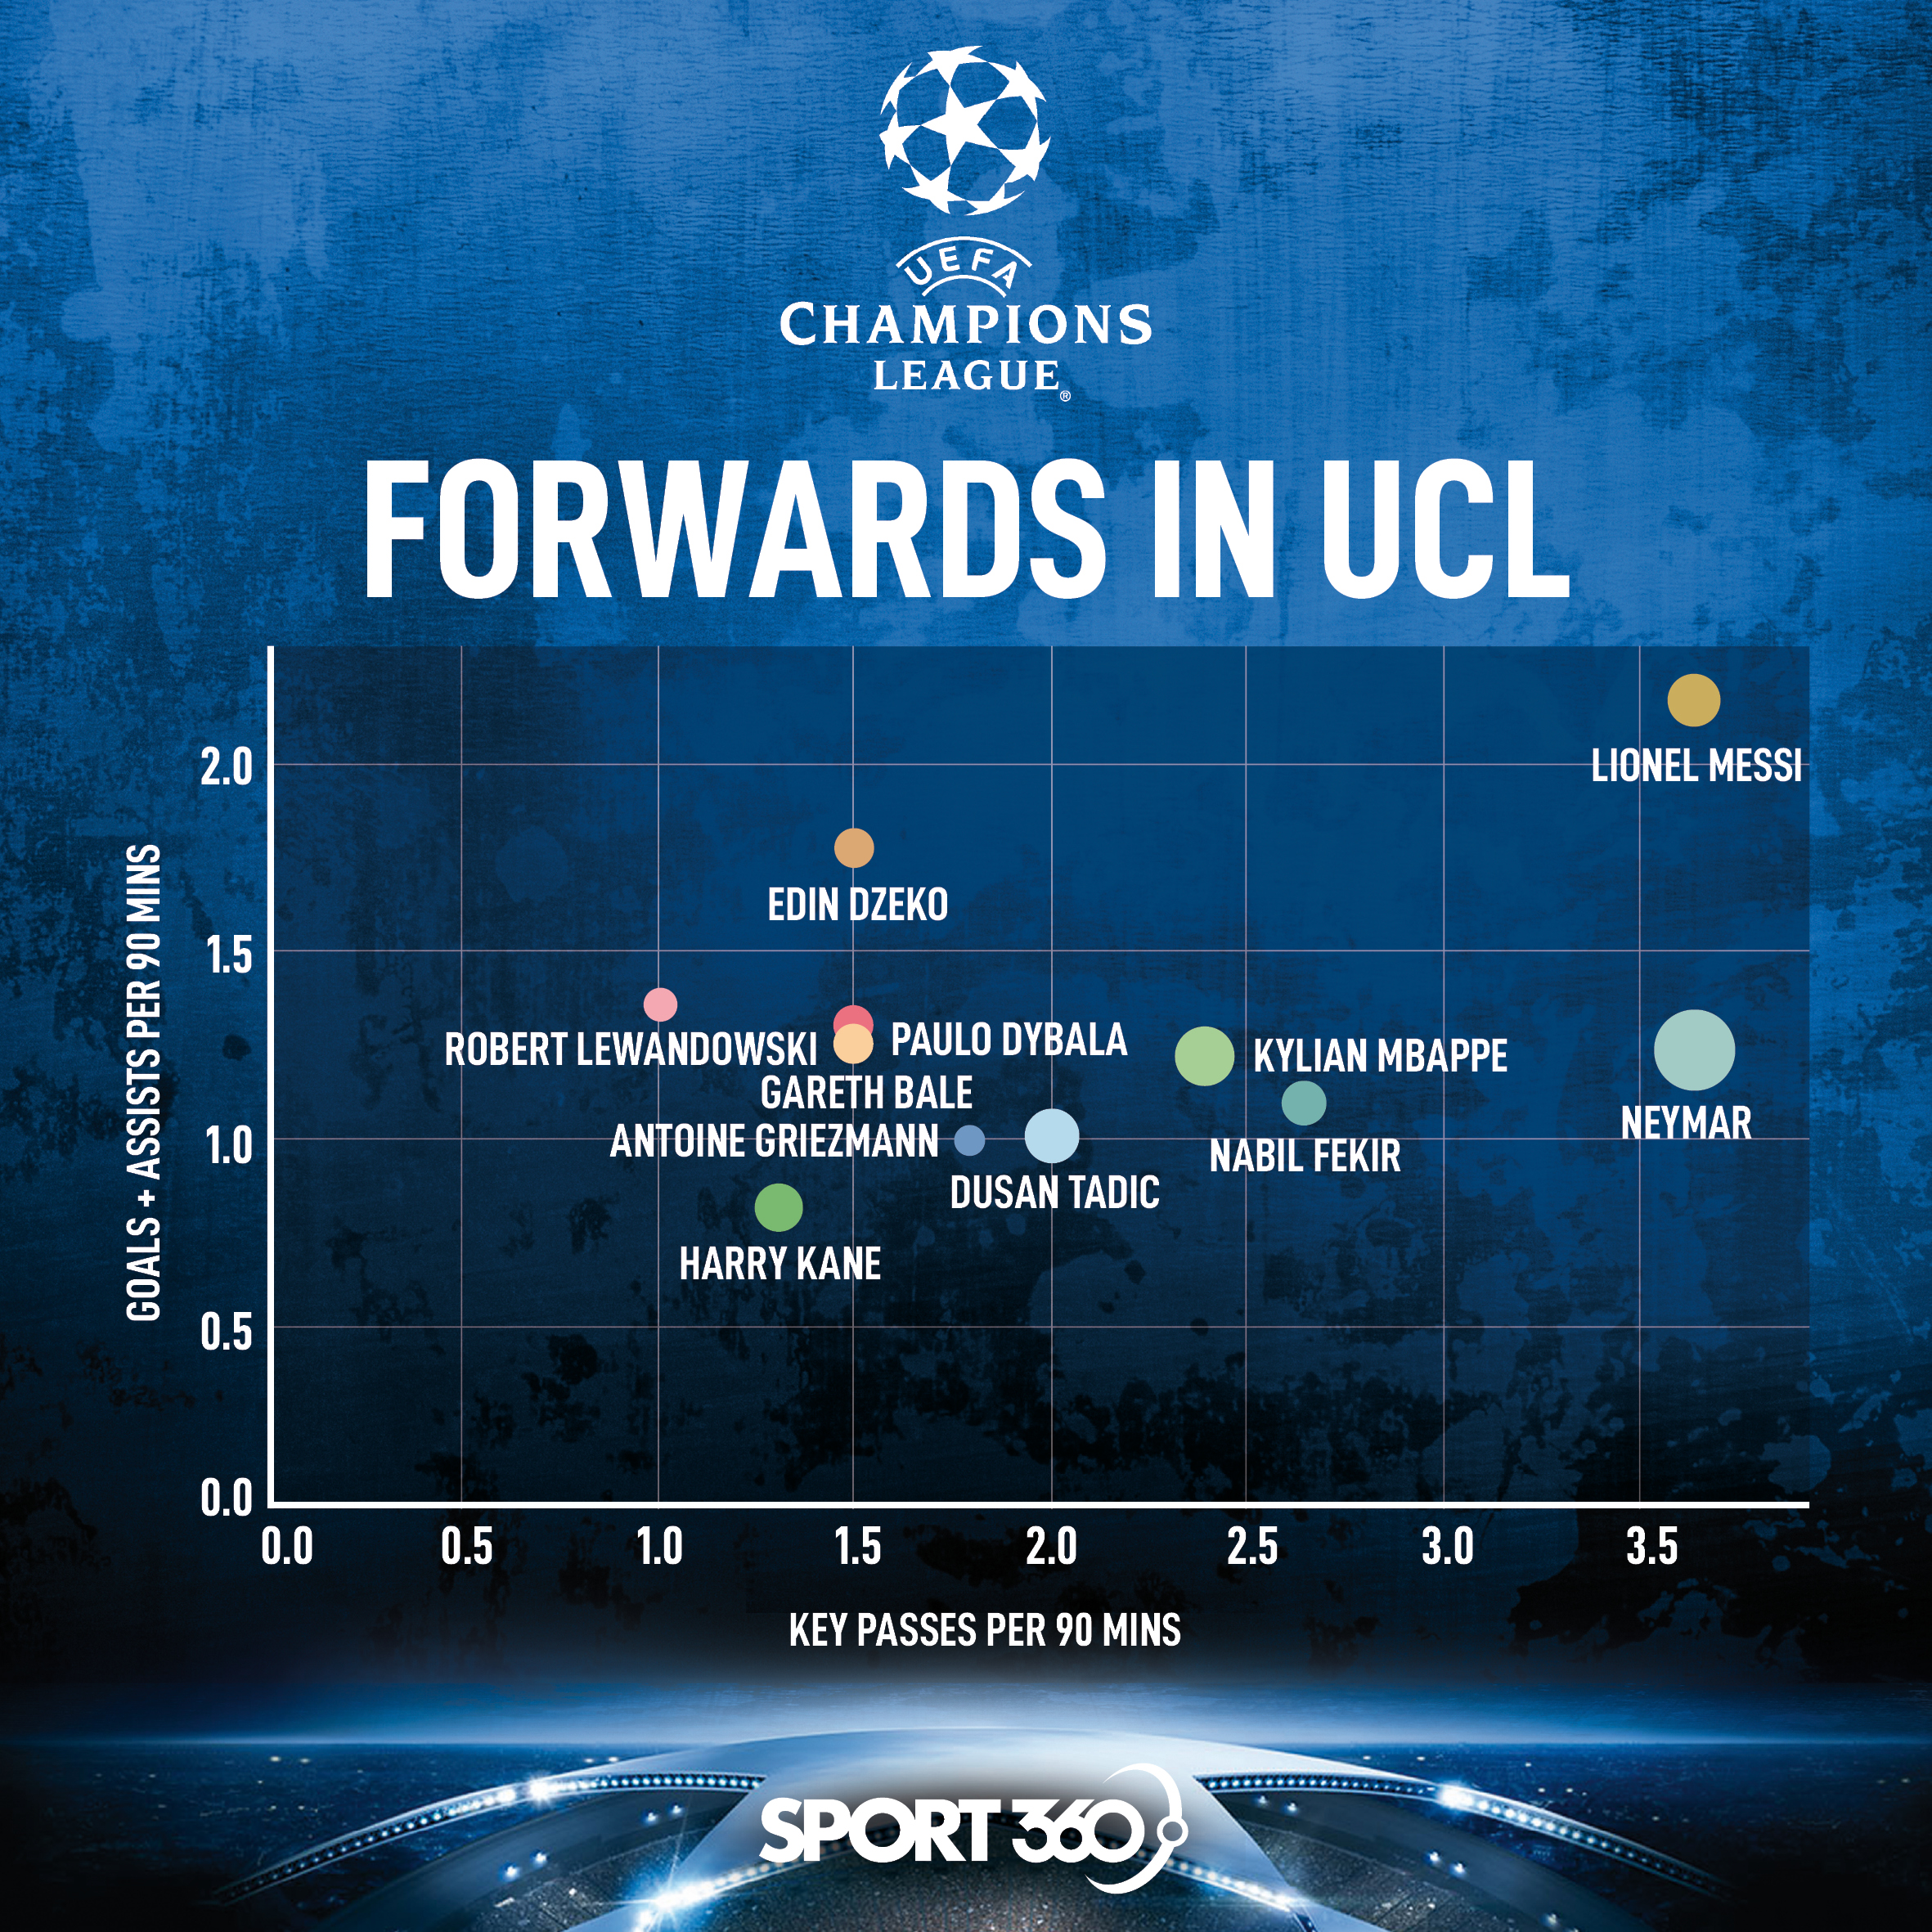 A chart showing how the forwards have performed in the Champions League this season